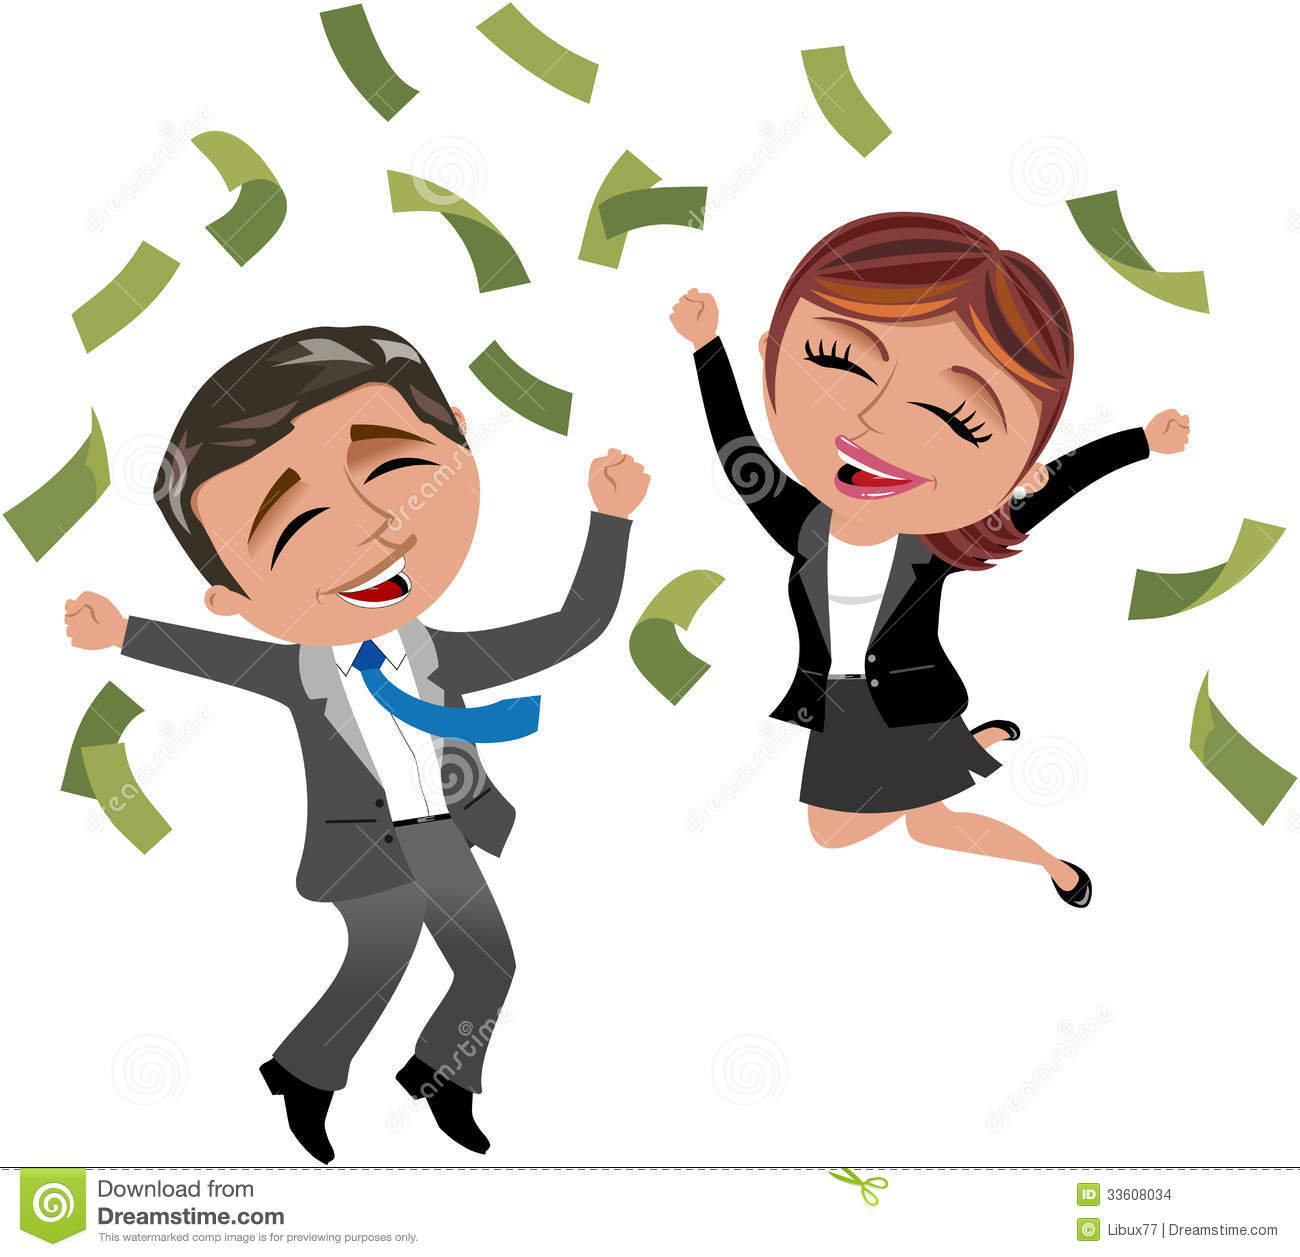 successful-business-woman-man-under-money-rain-illustration-featuring-cartoon-meg-bob-exulting-jumping-achieving-good-33608034.jpg